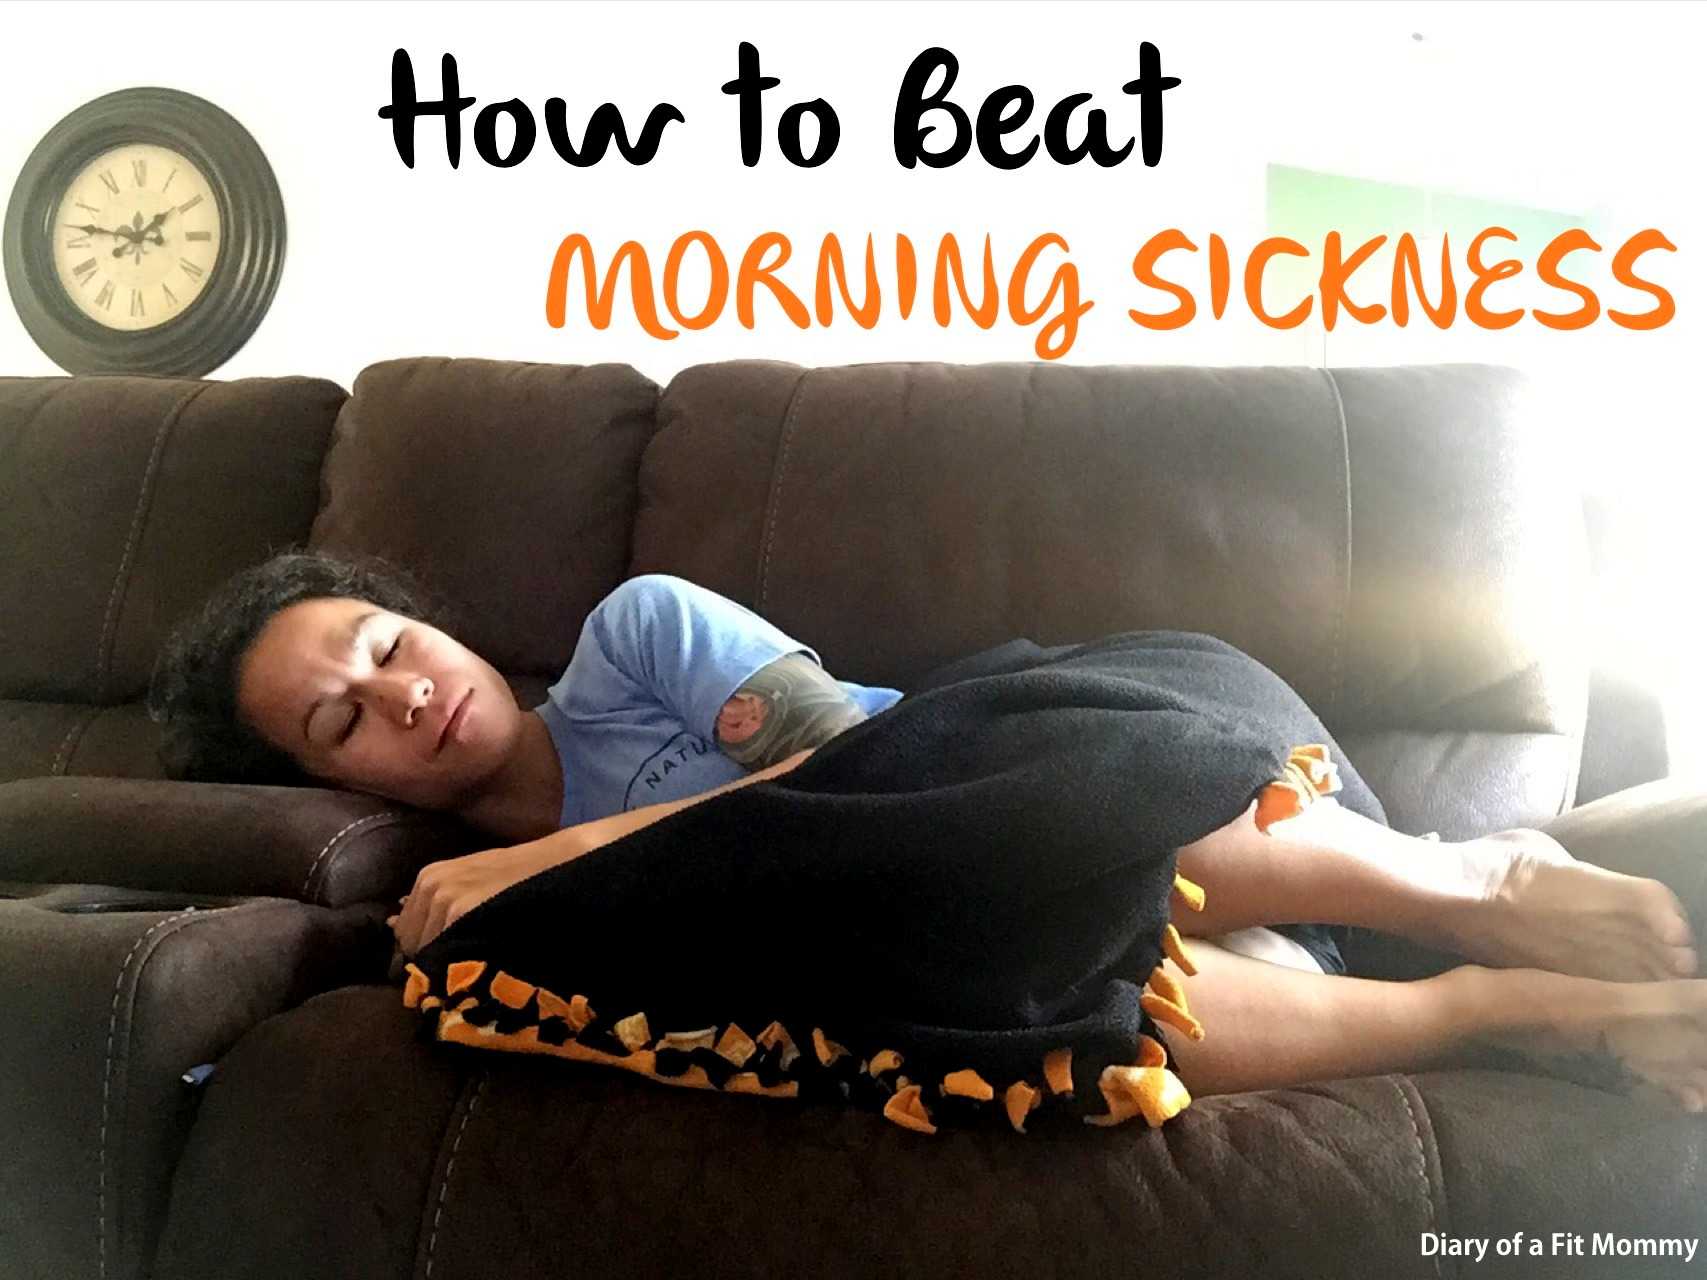 IMG_6639 diary of a fit mommy6 ways to kick morning sickness' ass diary of